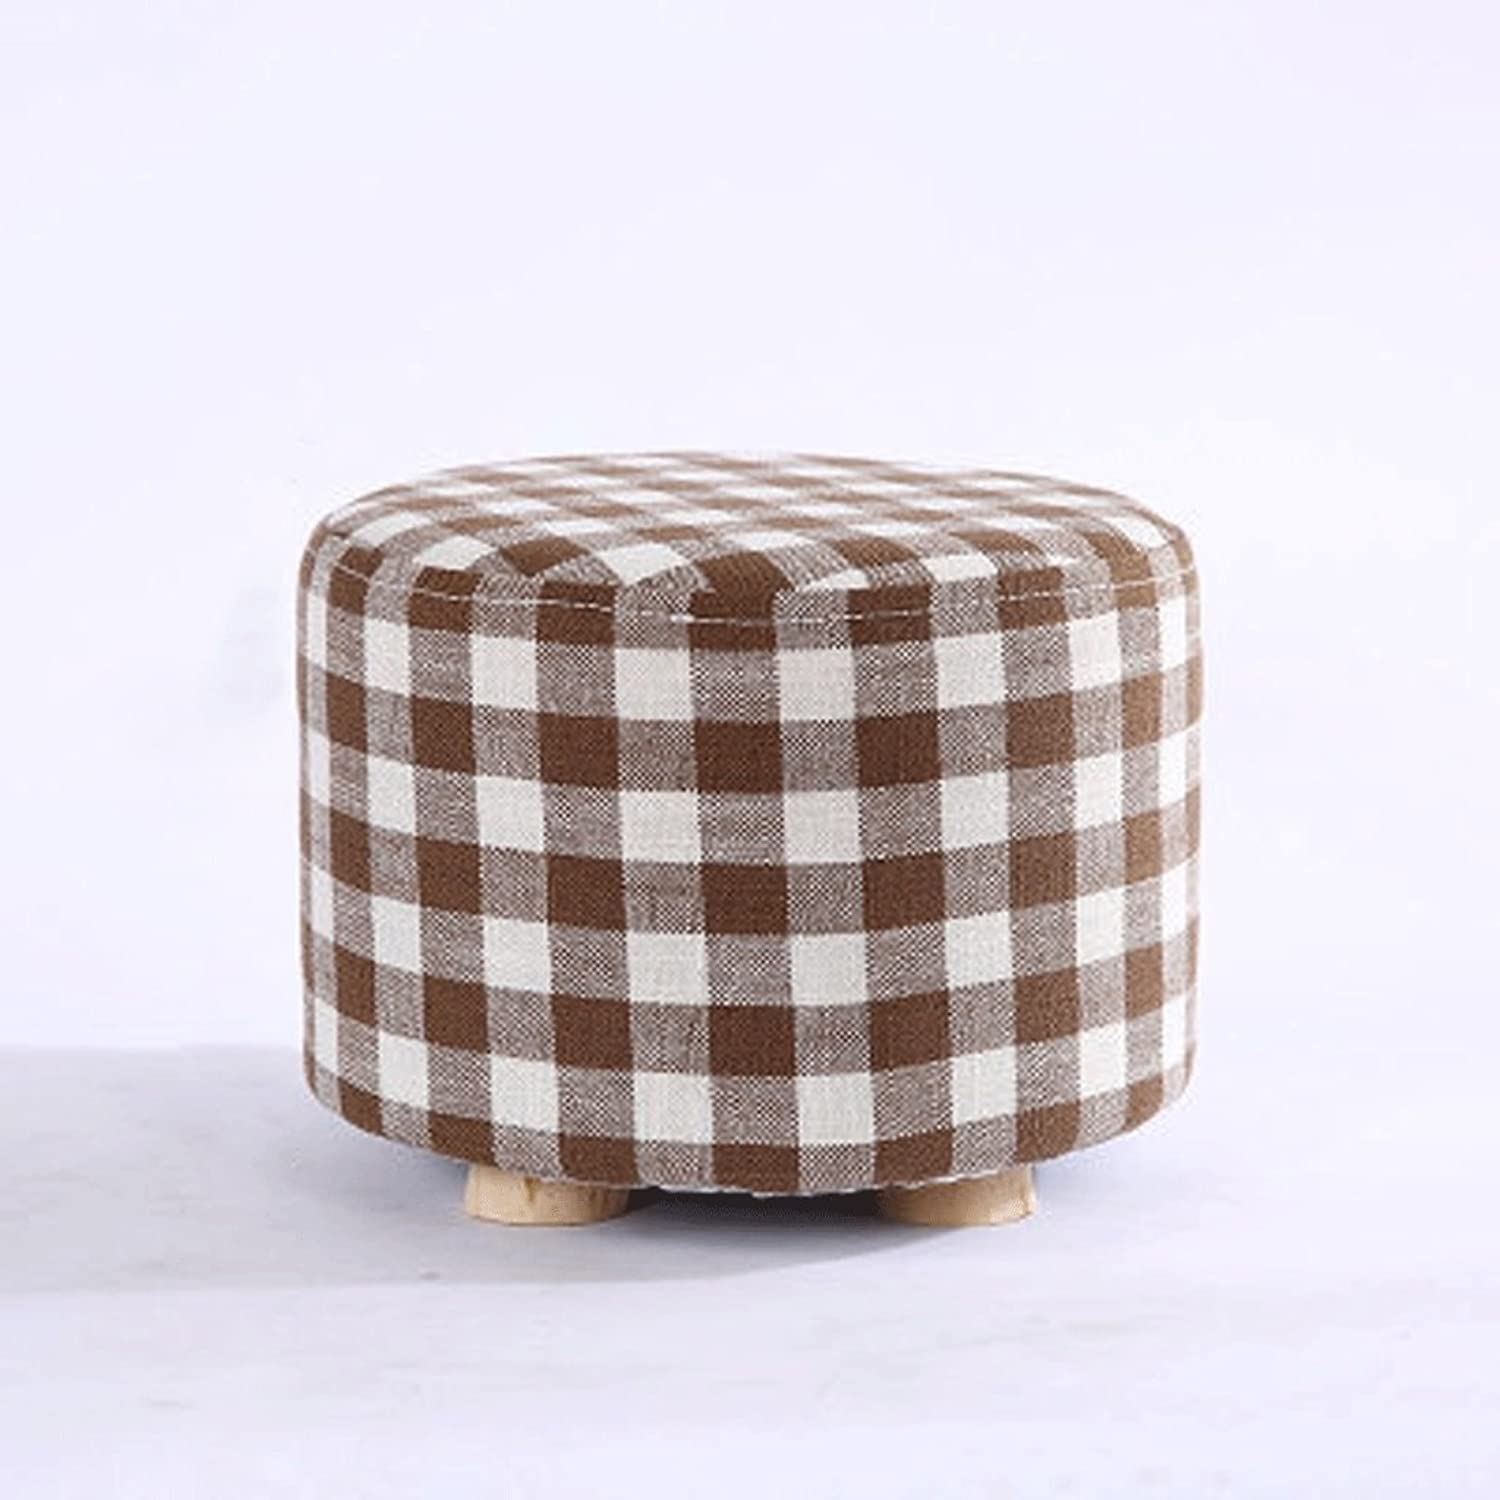 LXYFMS Small Stool Fashion Home Solid Wood Sofa Stool Creative Small Bench Wooden Bench (color   G)